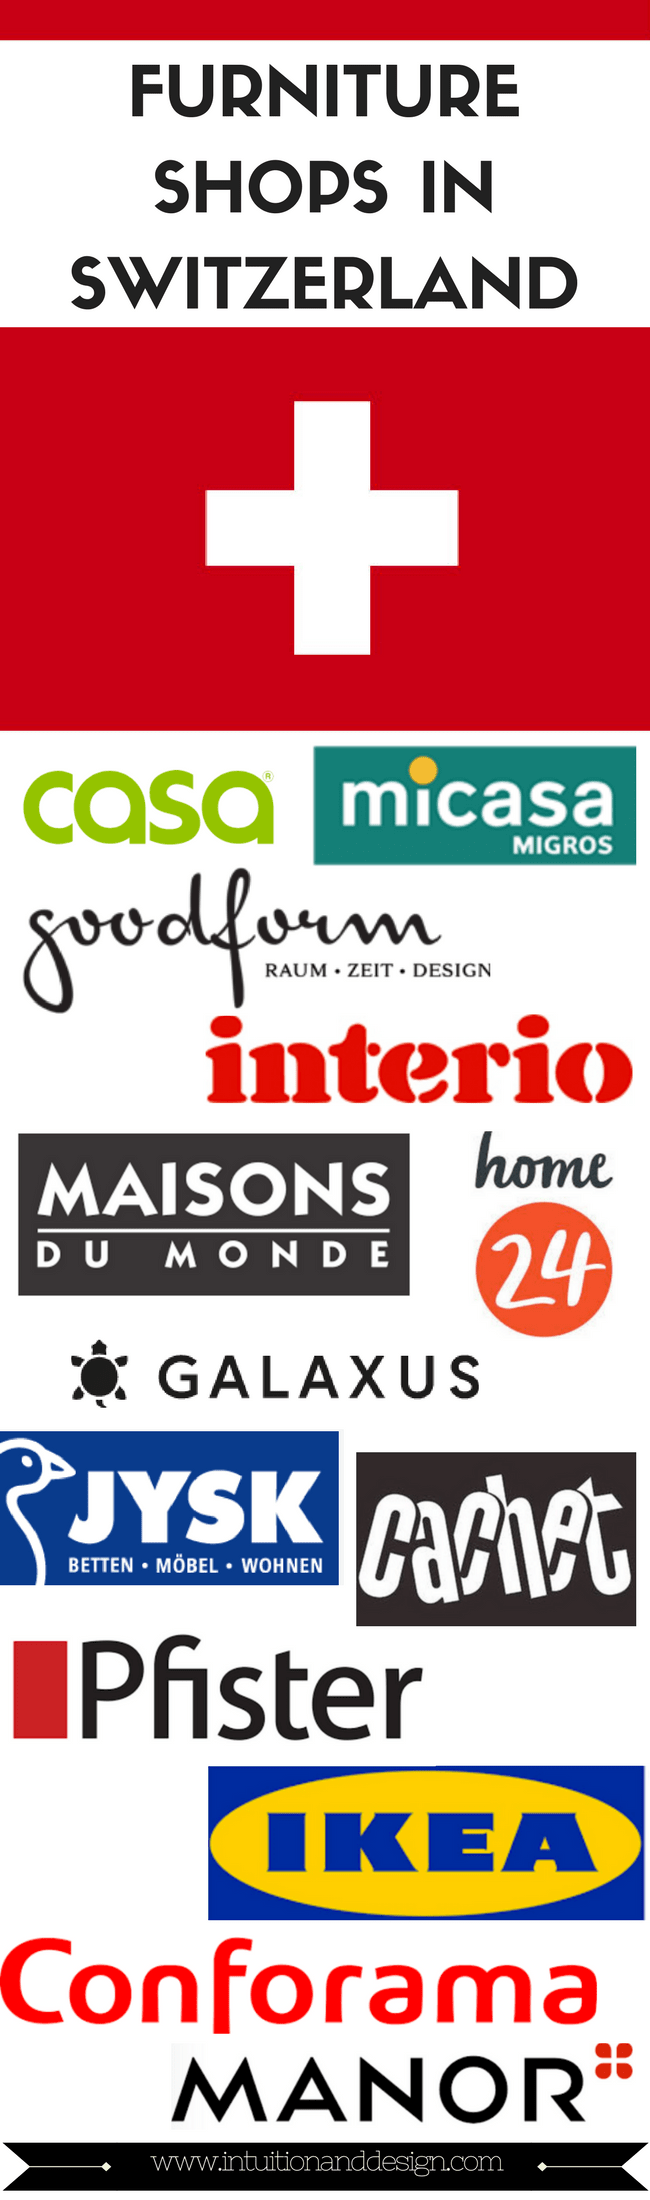 Furniture shops in Switzerland